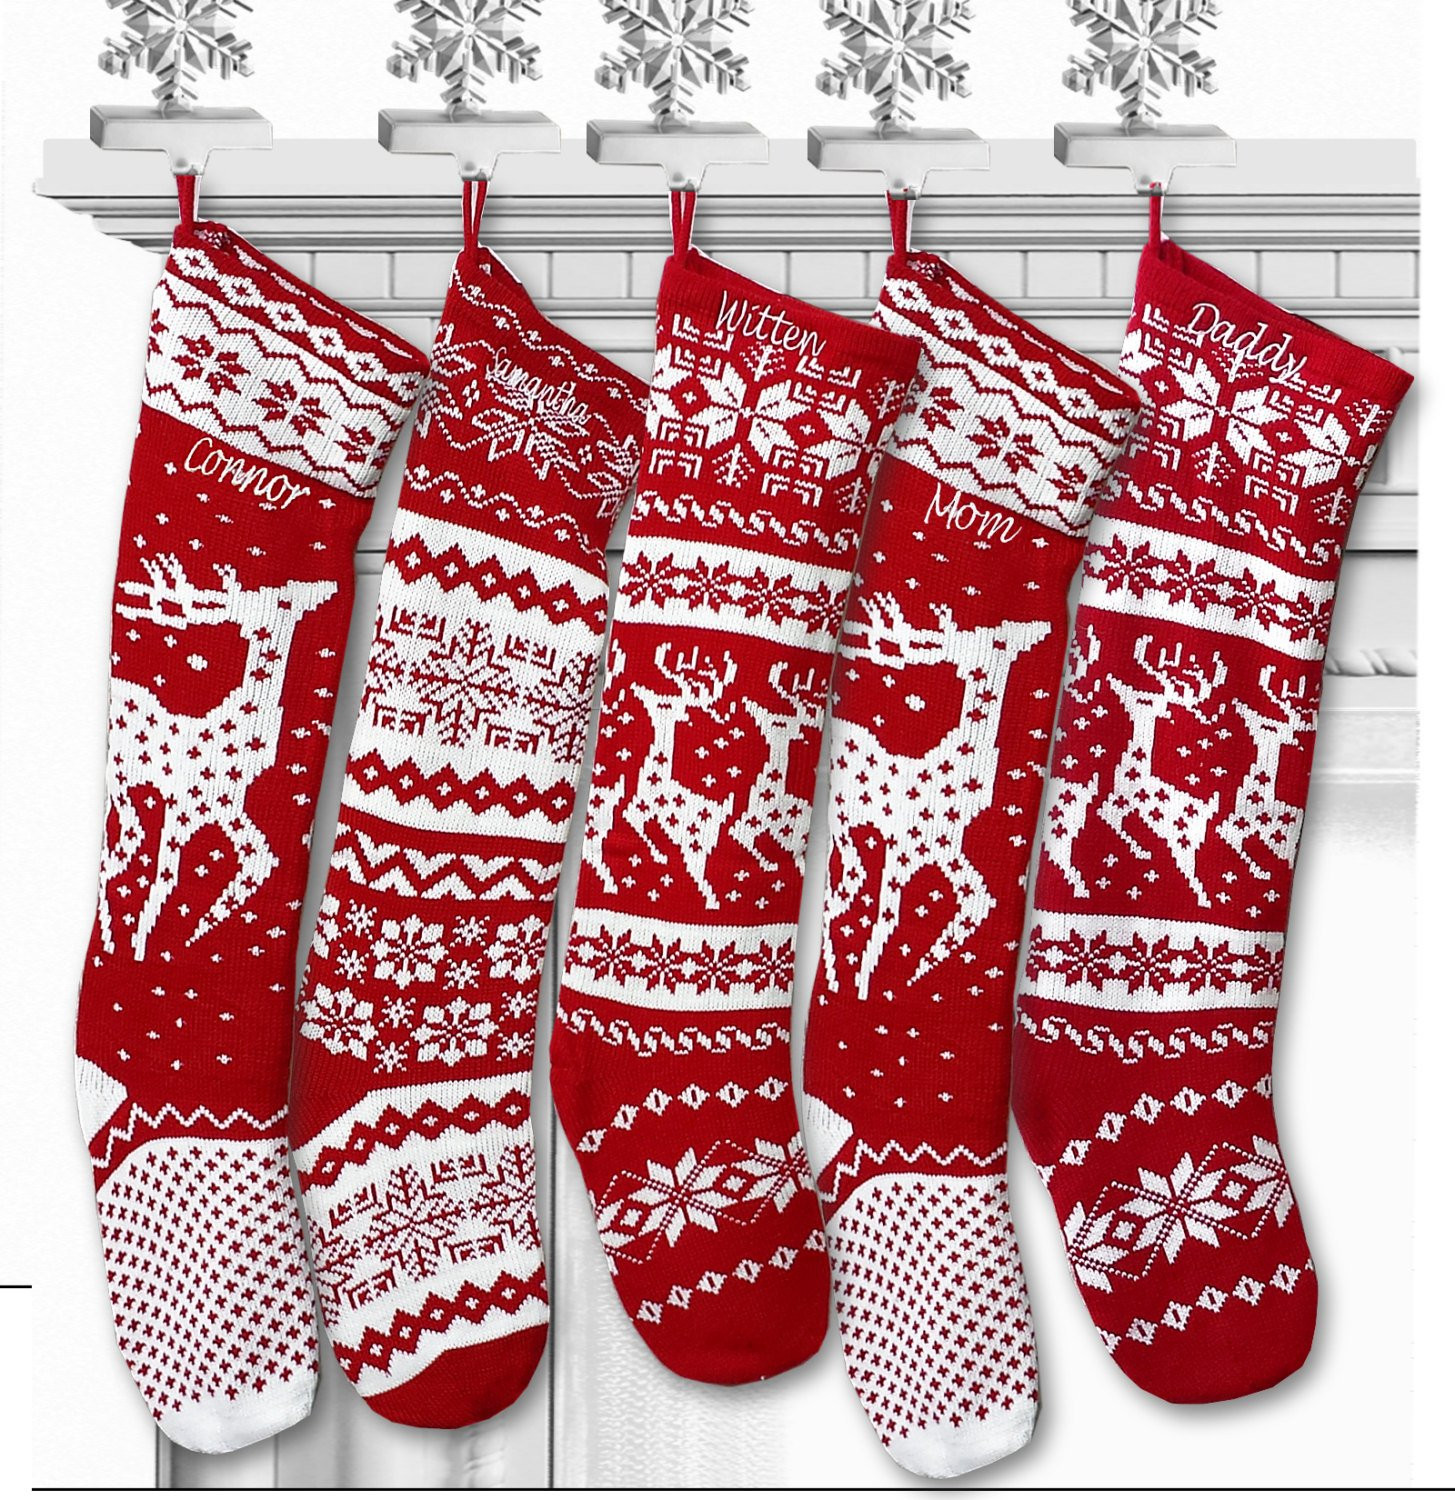 Knit Christmas Stockings Elegant Knit Christmas Stockings Red White Renindeer or by Eugenie2 Of Fresh 41 Photos Knit Christmas Stockings